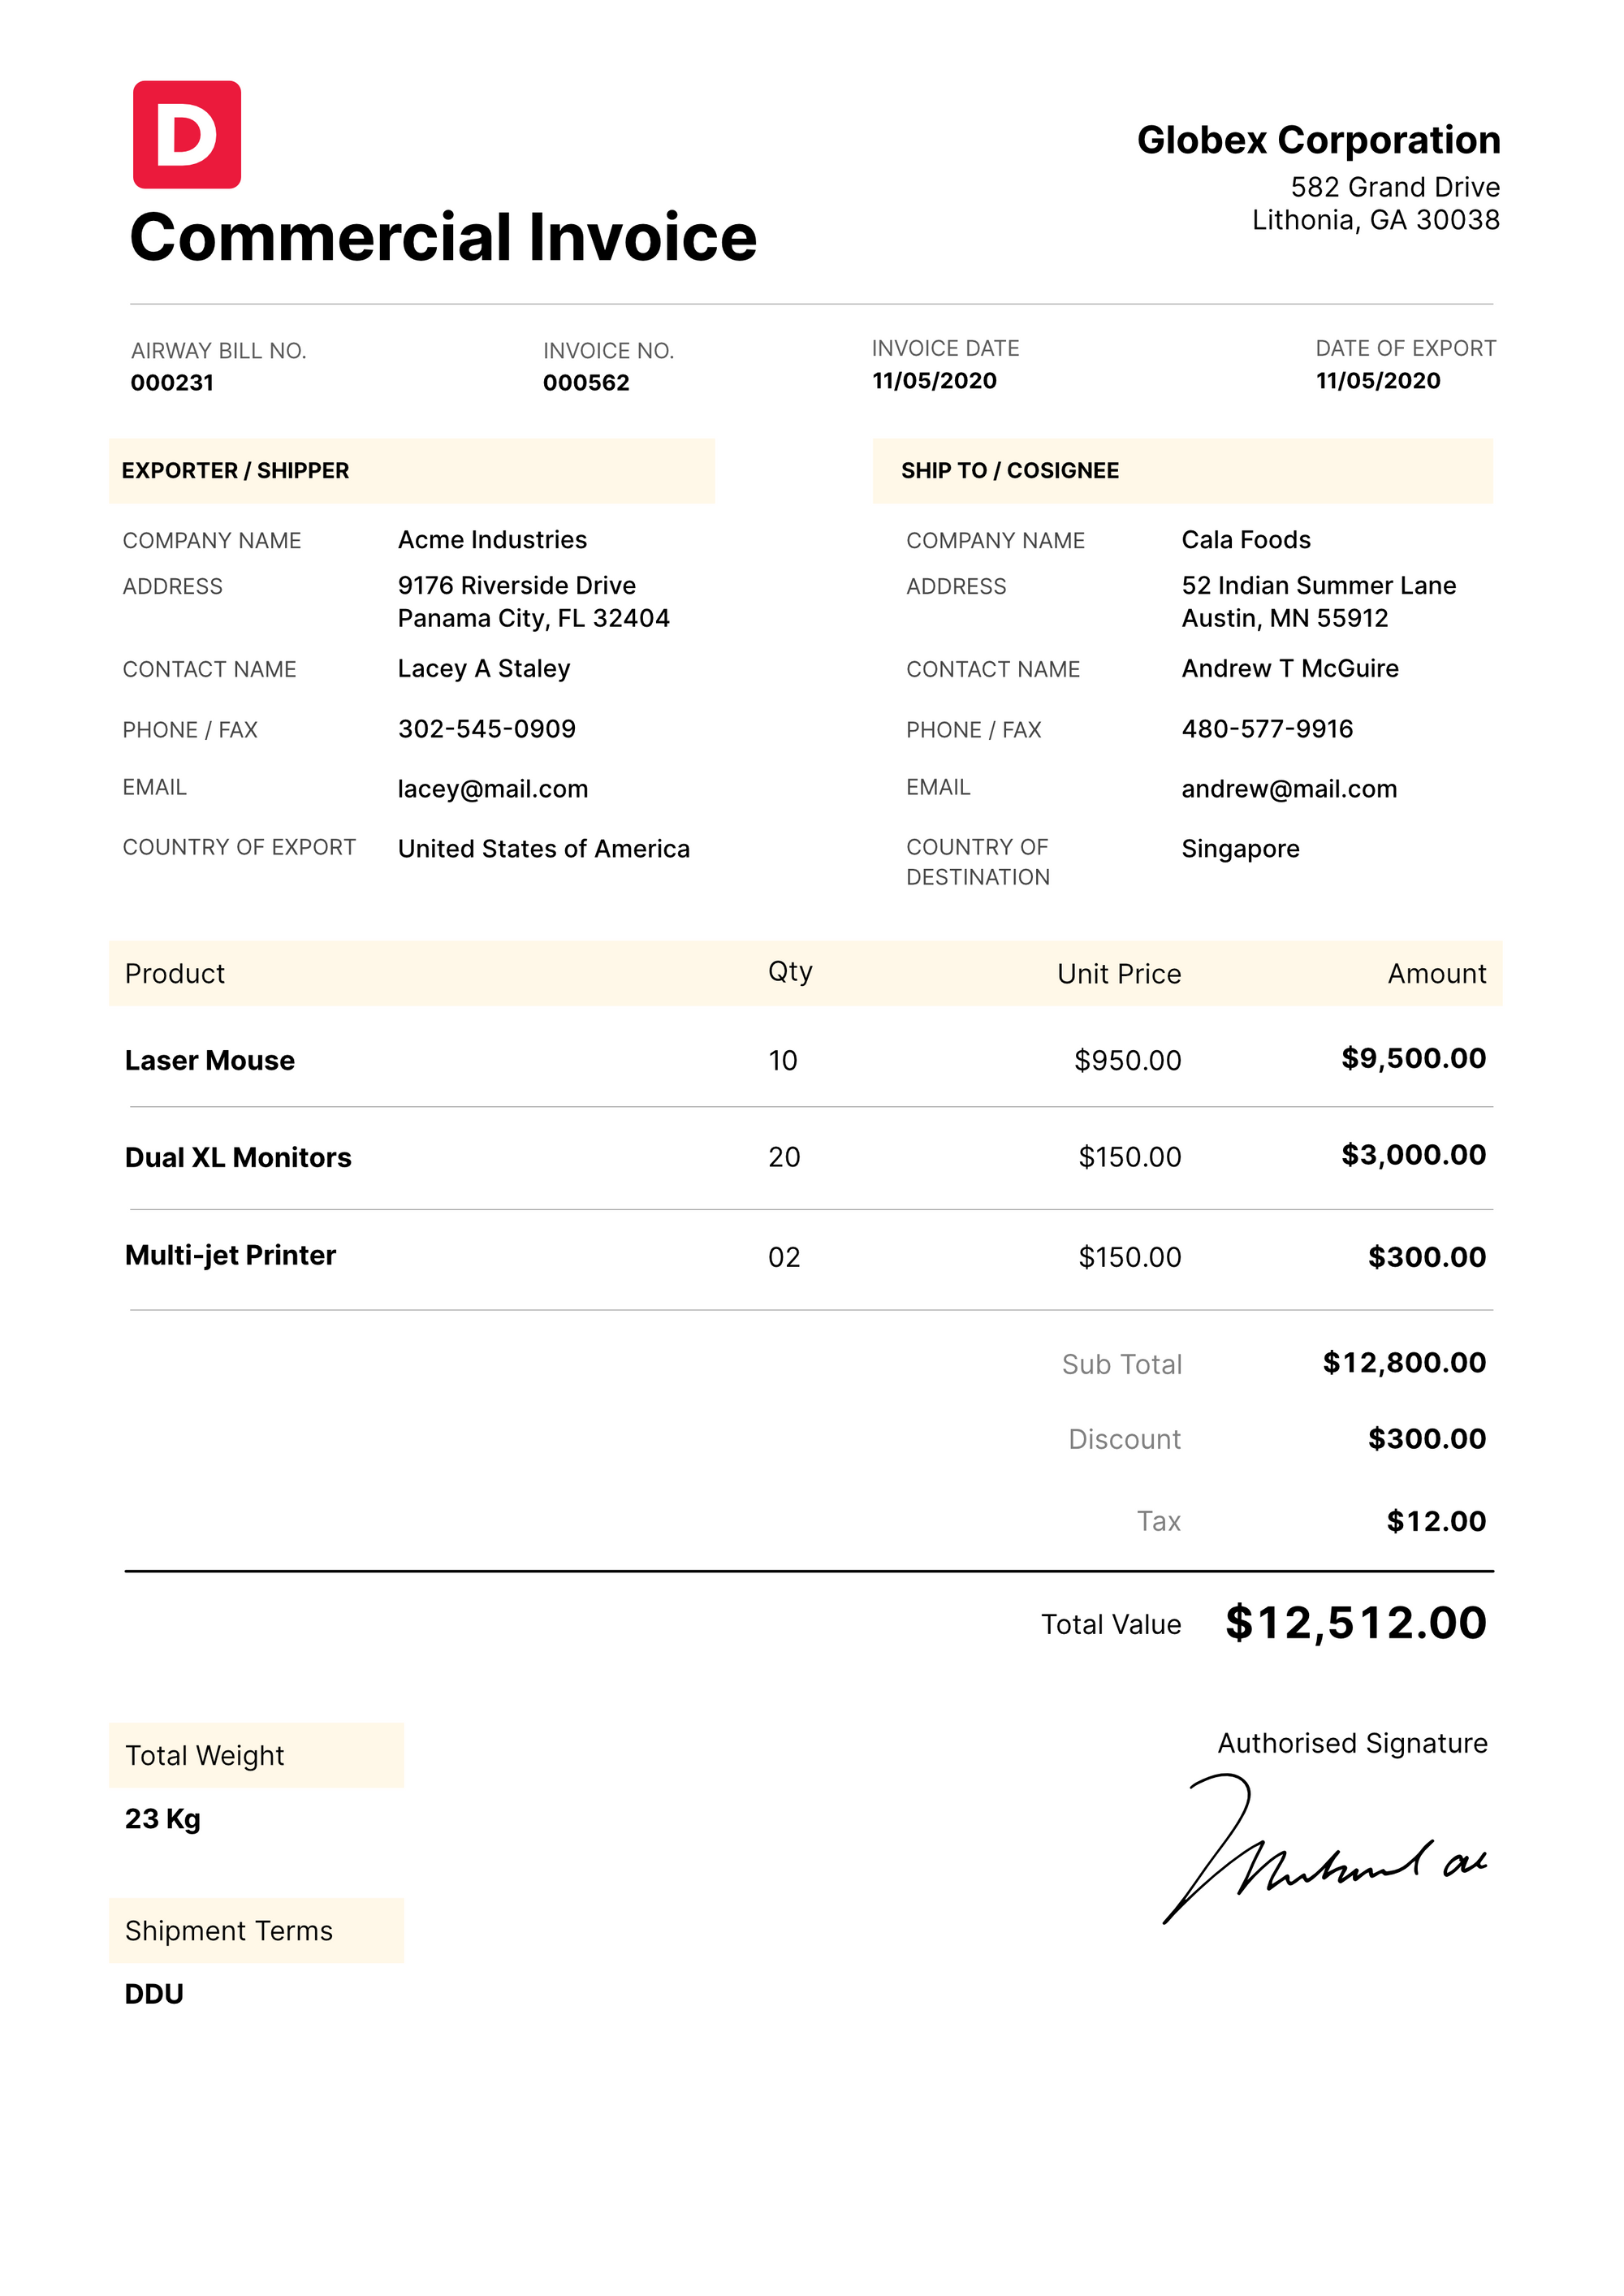 Commercial Invoice Type Example